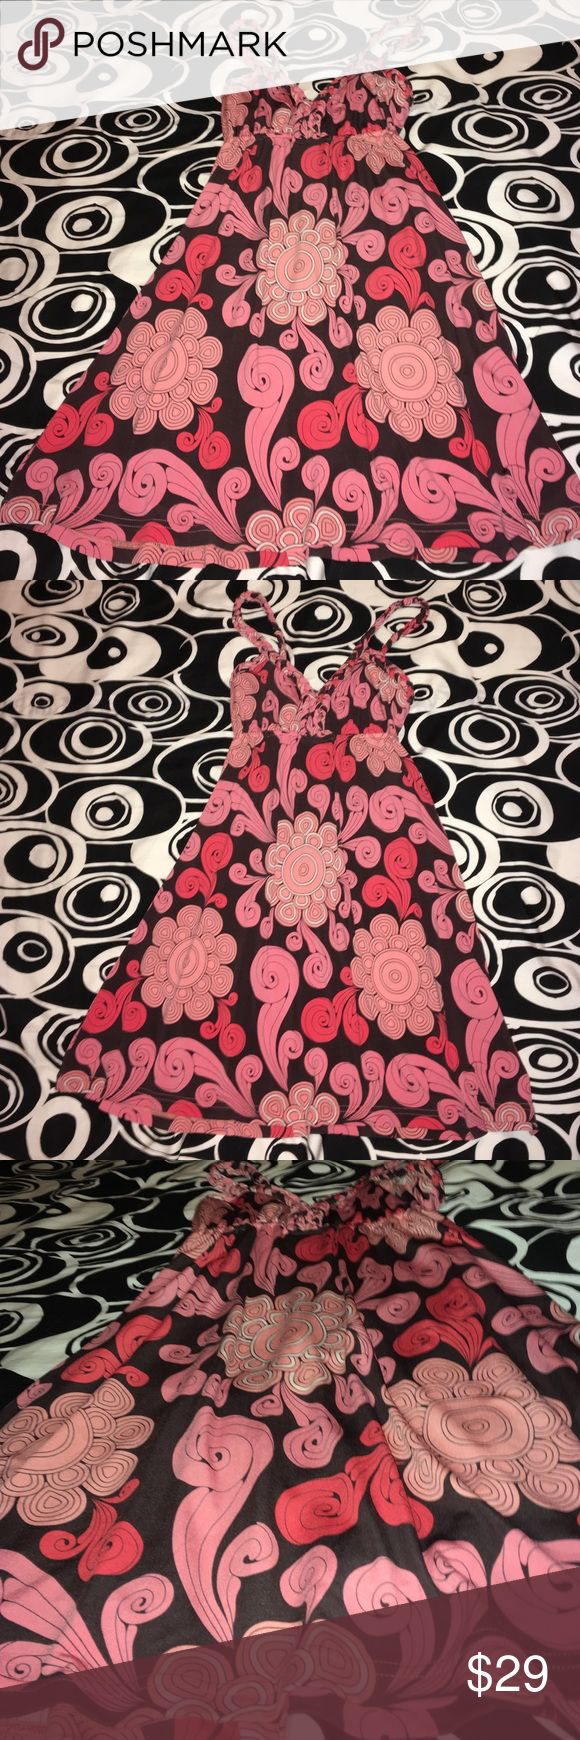 🌸NWT🌸JUDITH MARCH SUNDRESS IN HIPPIE 70's COLORS 🌸GREAT DRESS FROM JUDITH MARCH FOR A GREAT DEAL🌸EXCELLENT CHOICE FOR SUMMER CONCERTS, THE BEACH, DINNER & DRINKS....PAIR WITH SOME CHUNKY SANDALS & LEATHER AND PEARL JEWELRY TO ROCK OUT YOUR HIPPIE BEACH BABE VIB🌸X~SMALL🌸 Judith March Dresses Mini